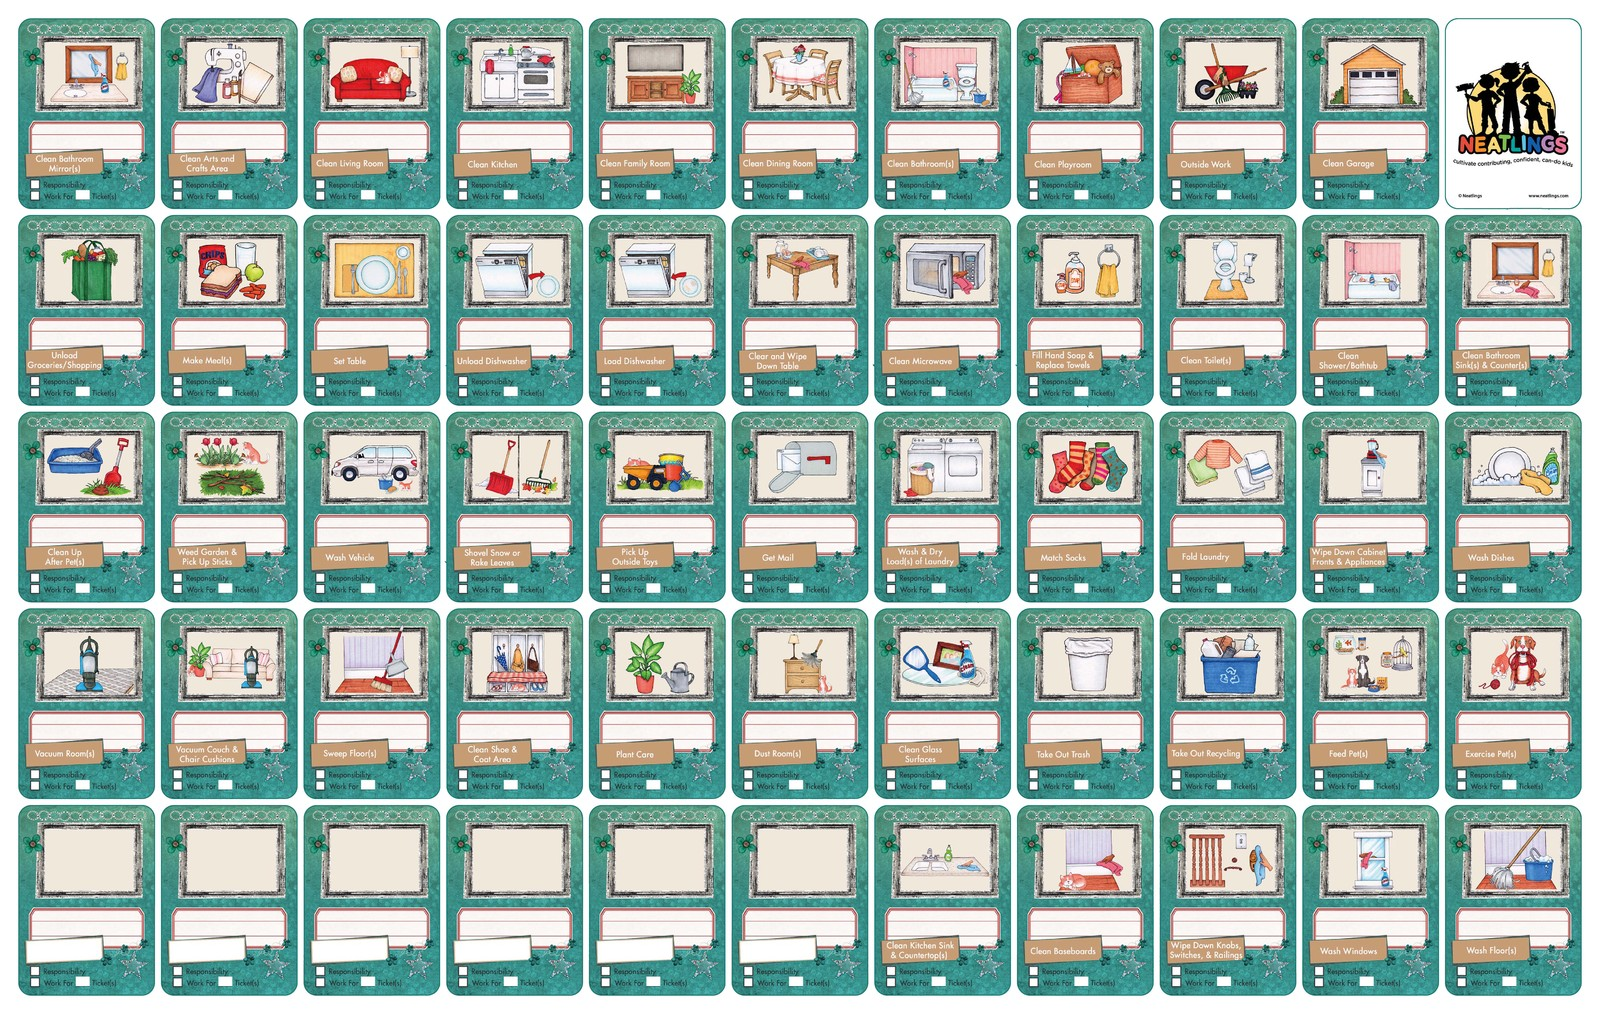 NEATLINGS Chore Chart System | 1 Child | 80+ Chore | Teal & Orange Cards image 4